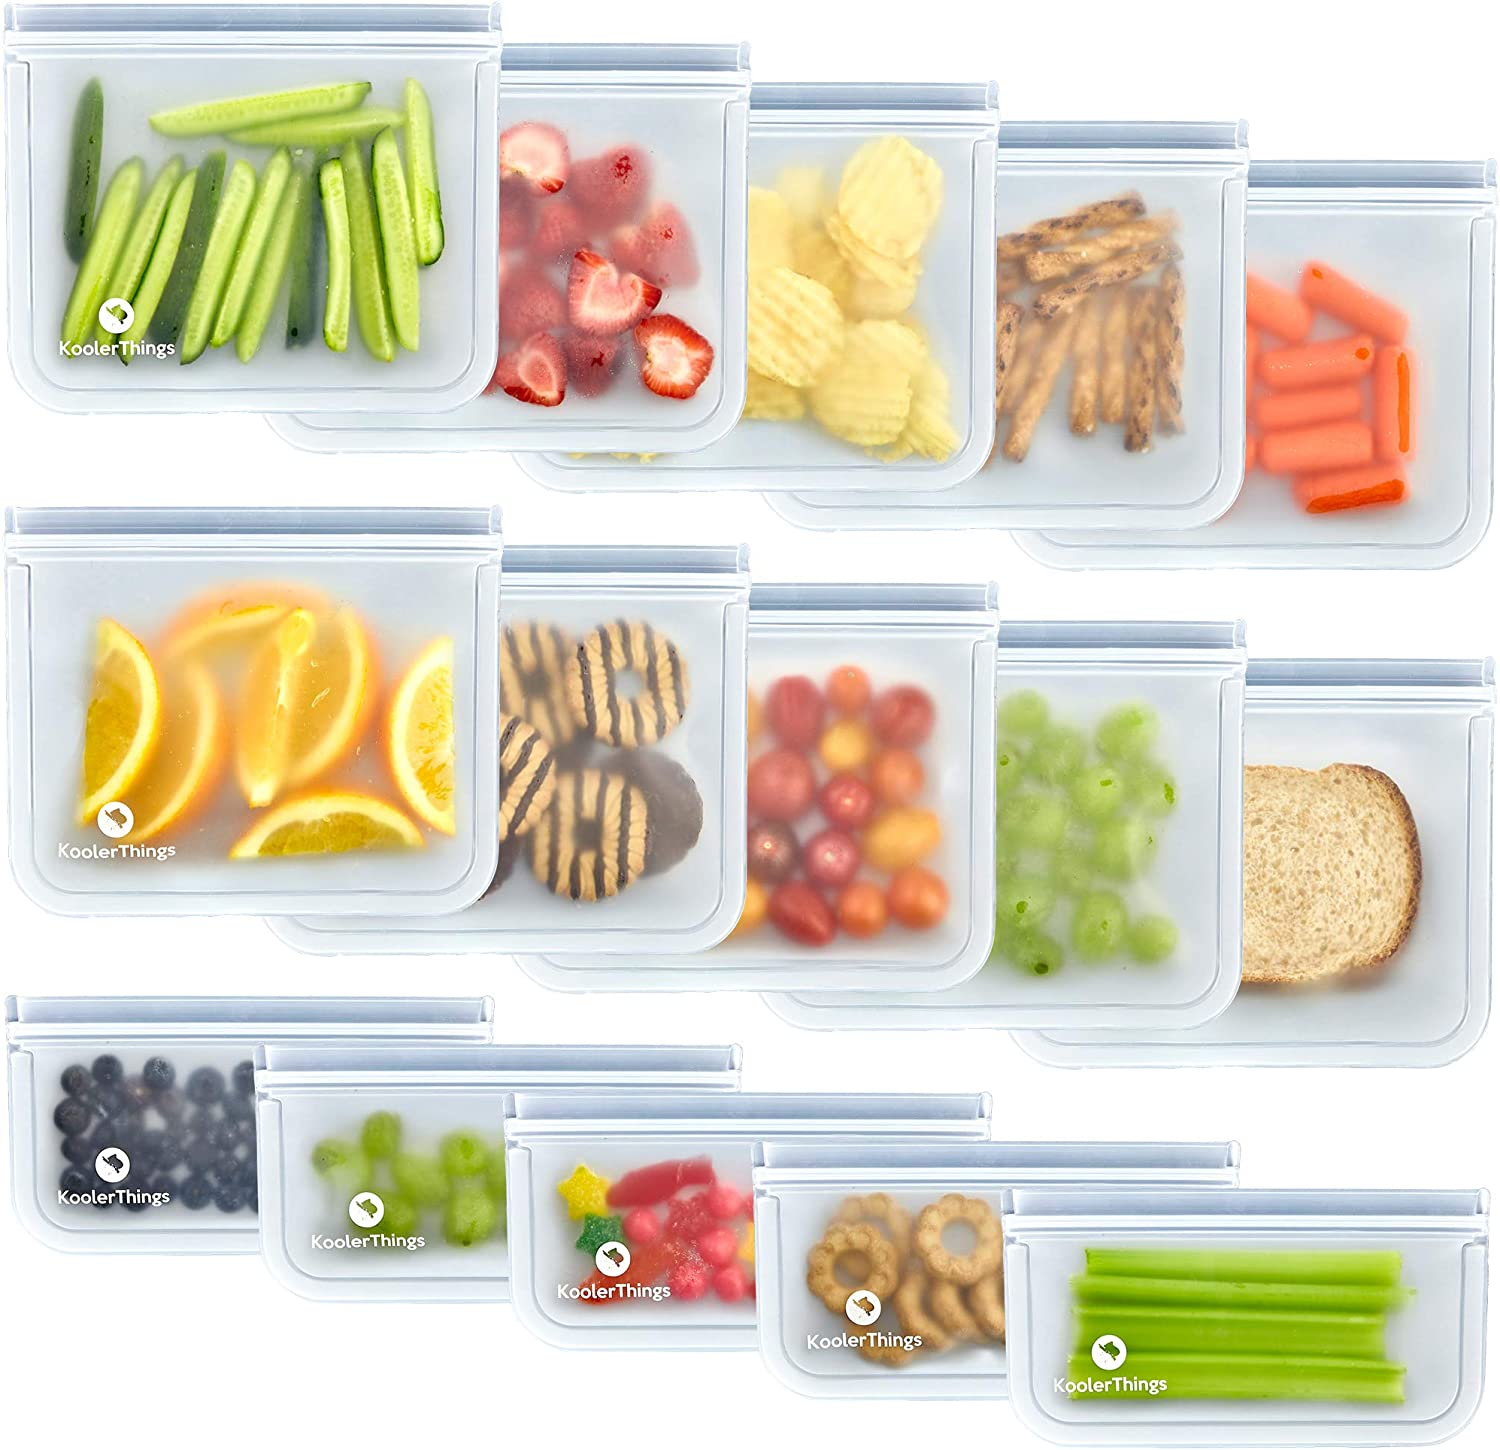 Leakproof Sandwich Food Storage Bags Freezer Bags Containers Kitchen Organizer